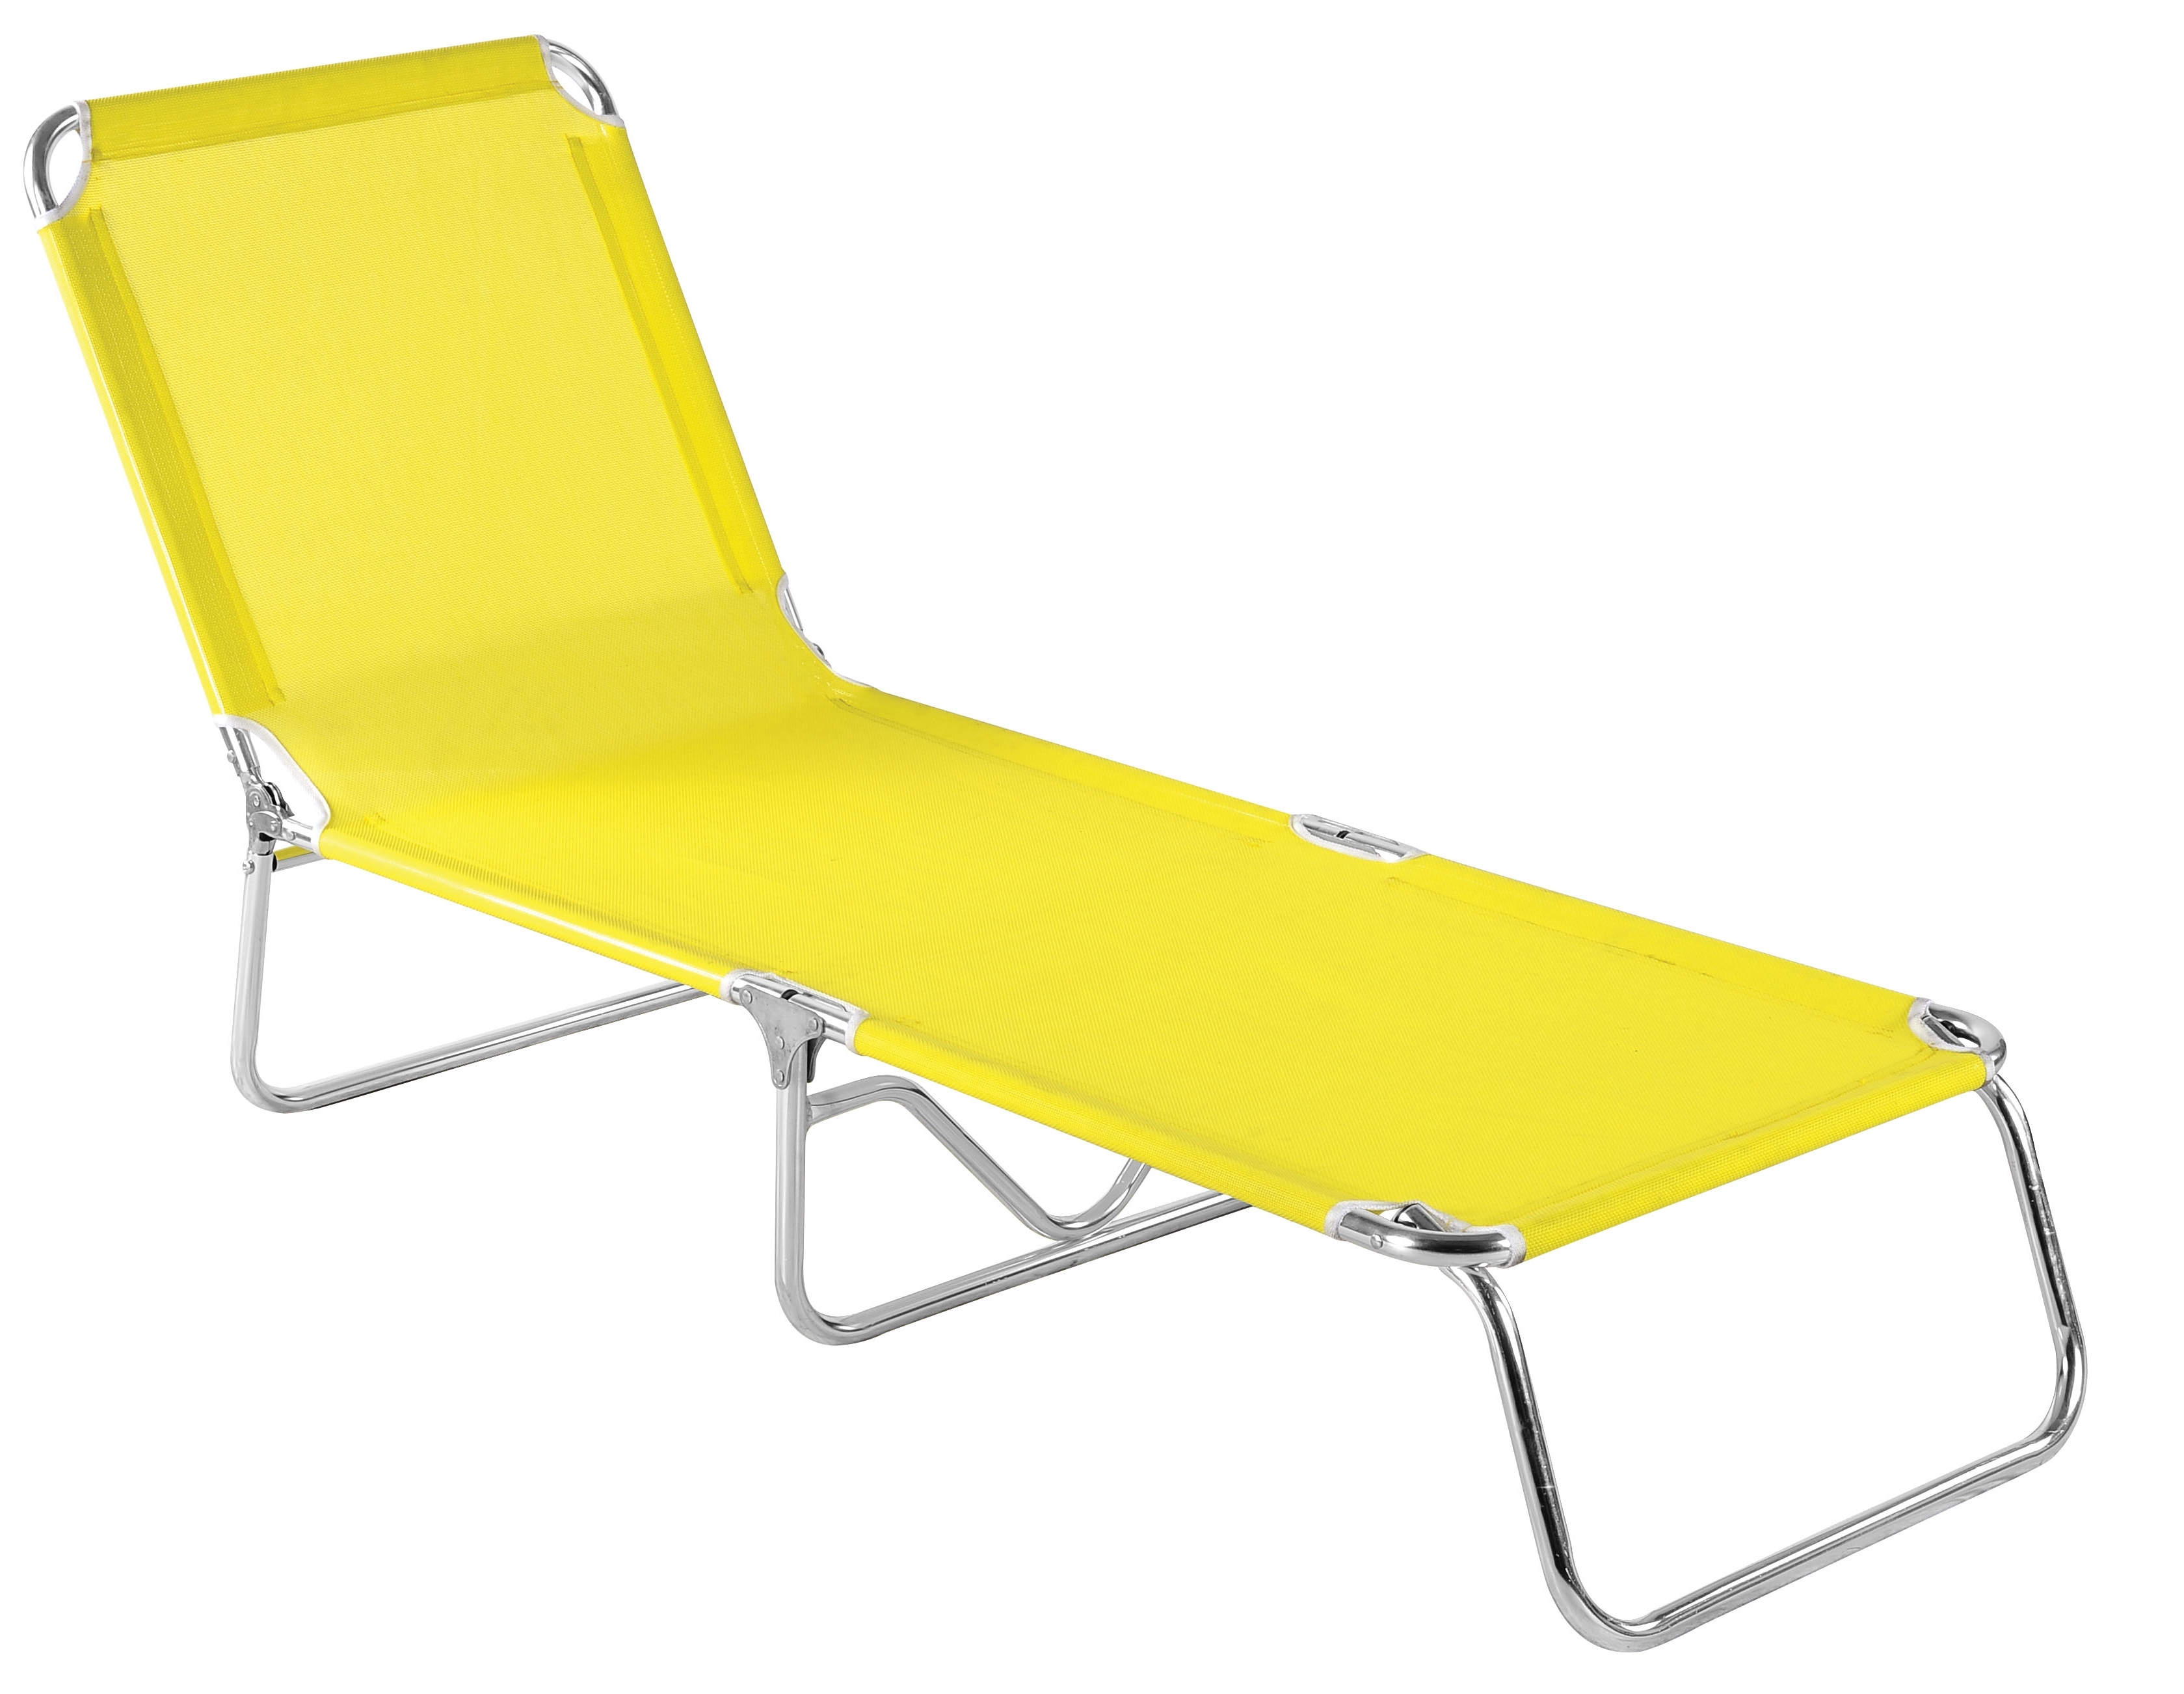 Chaise Lounge Folding Chairs Pertaining To Most Recent Folding Beach Chaise Lounge (View 13 of 15)